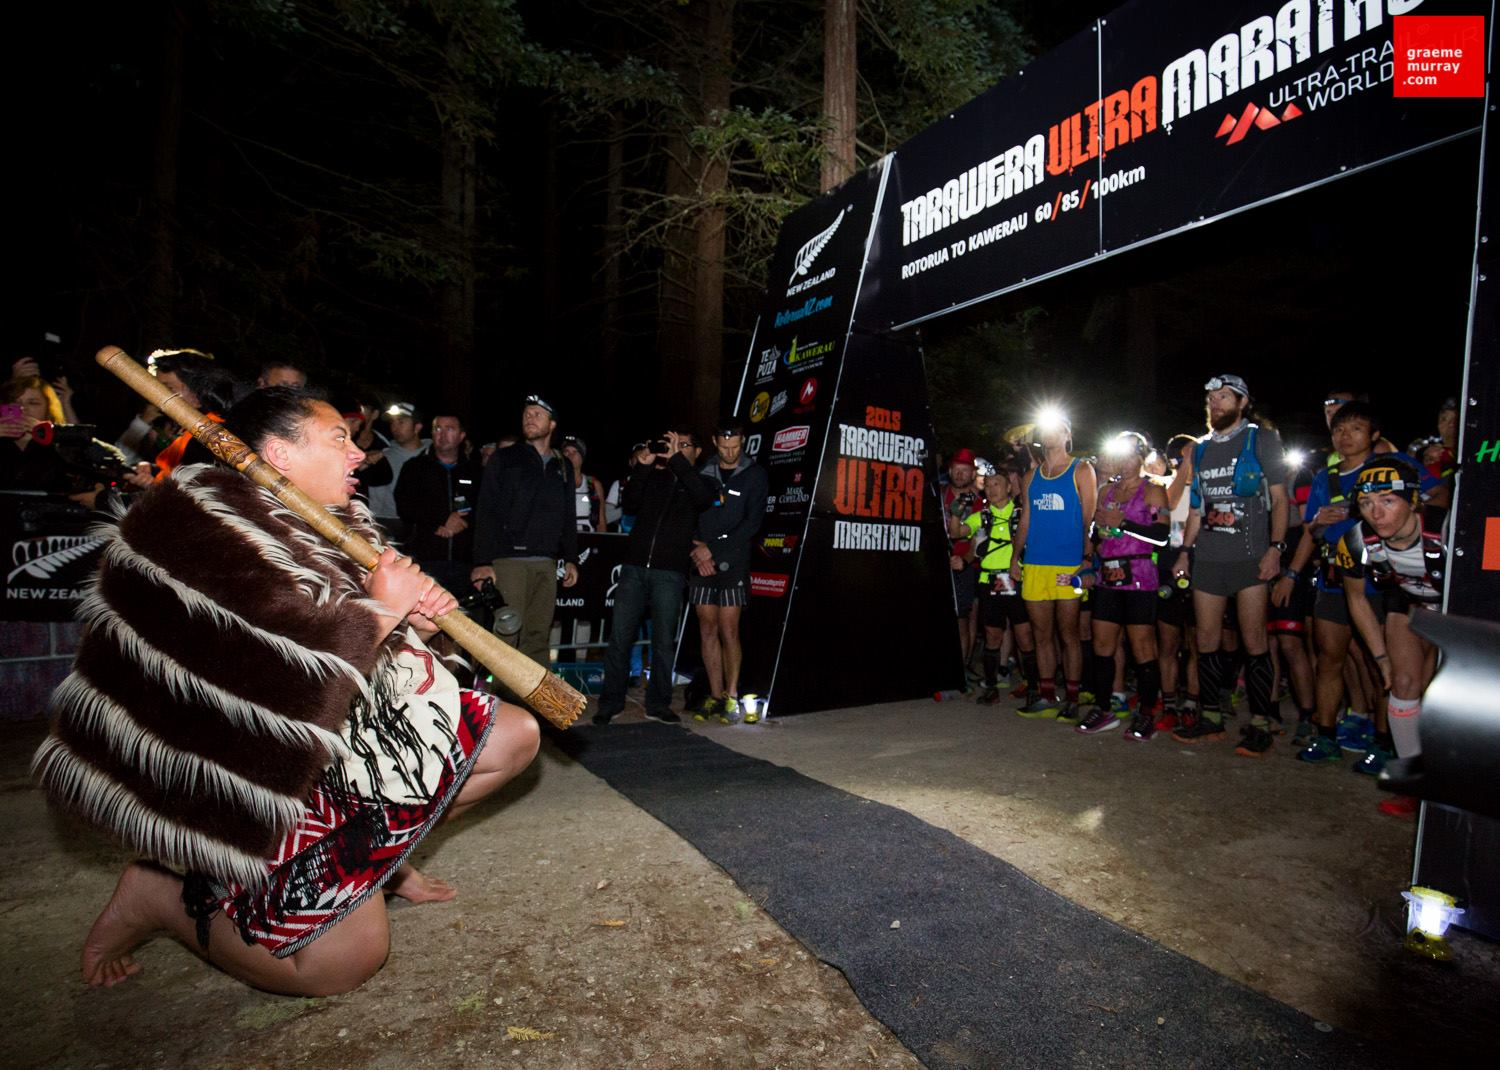 A ceremonial dance at the start line, with the elite runners looking on. Photo by Graeme Murray courtesy of Tarawera Ultra.